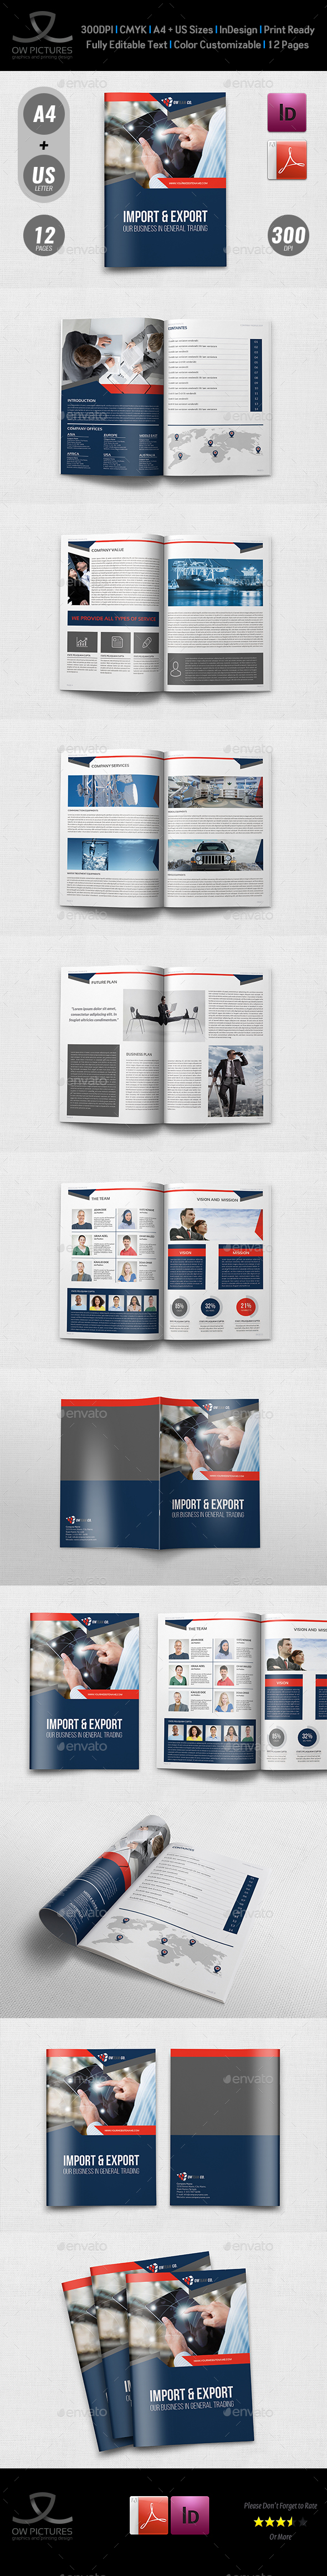 Company Profile Brochure Template Vol44 12 Pages By Owpictures